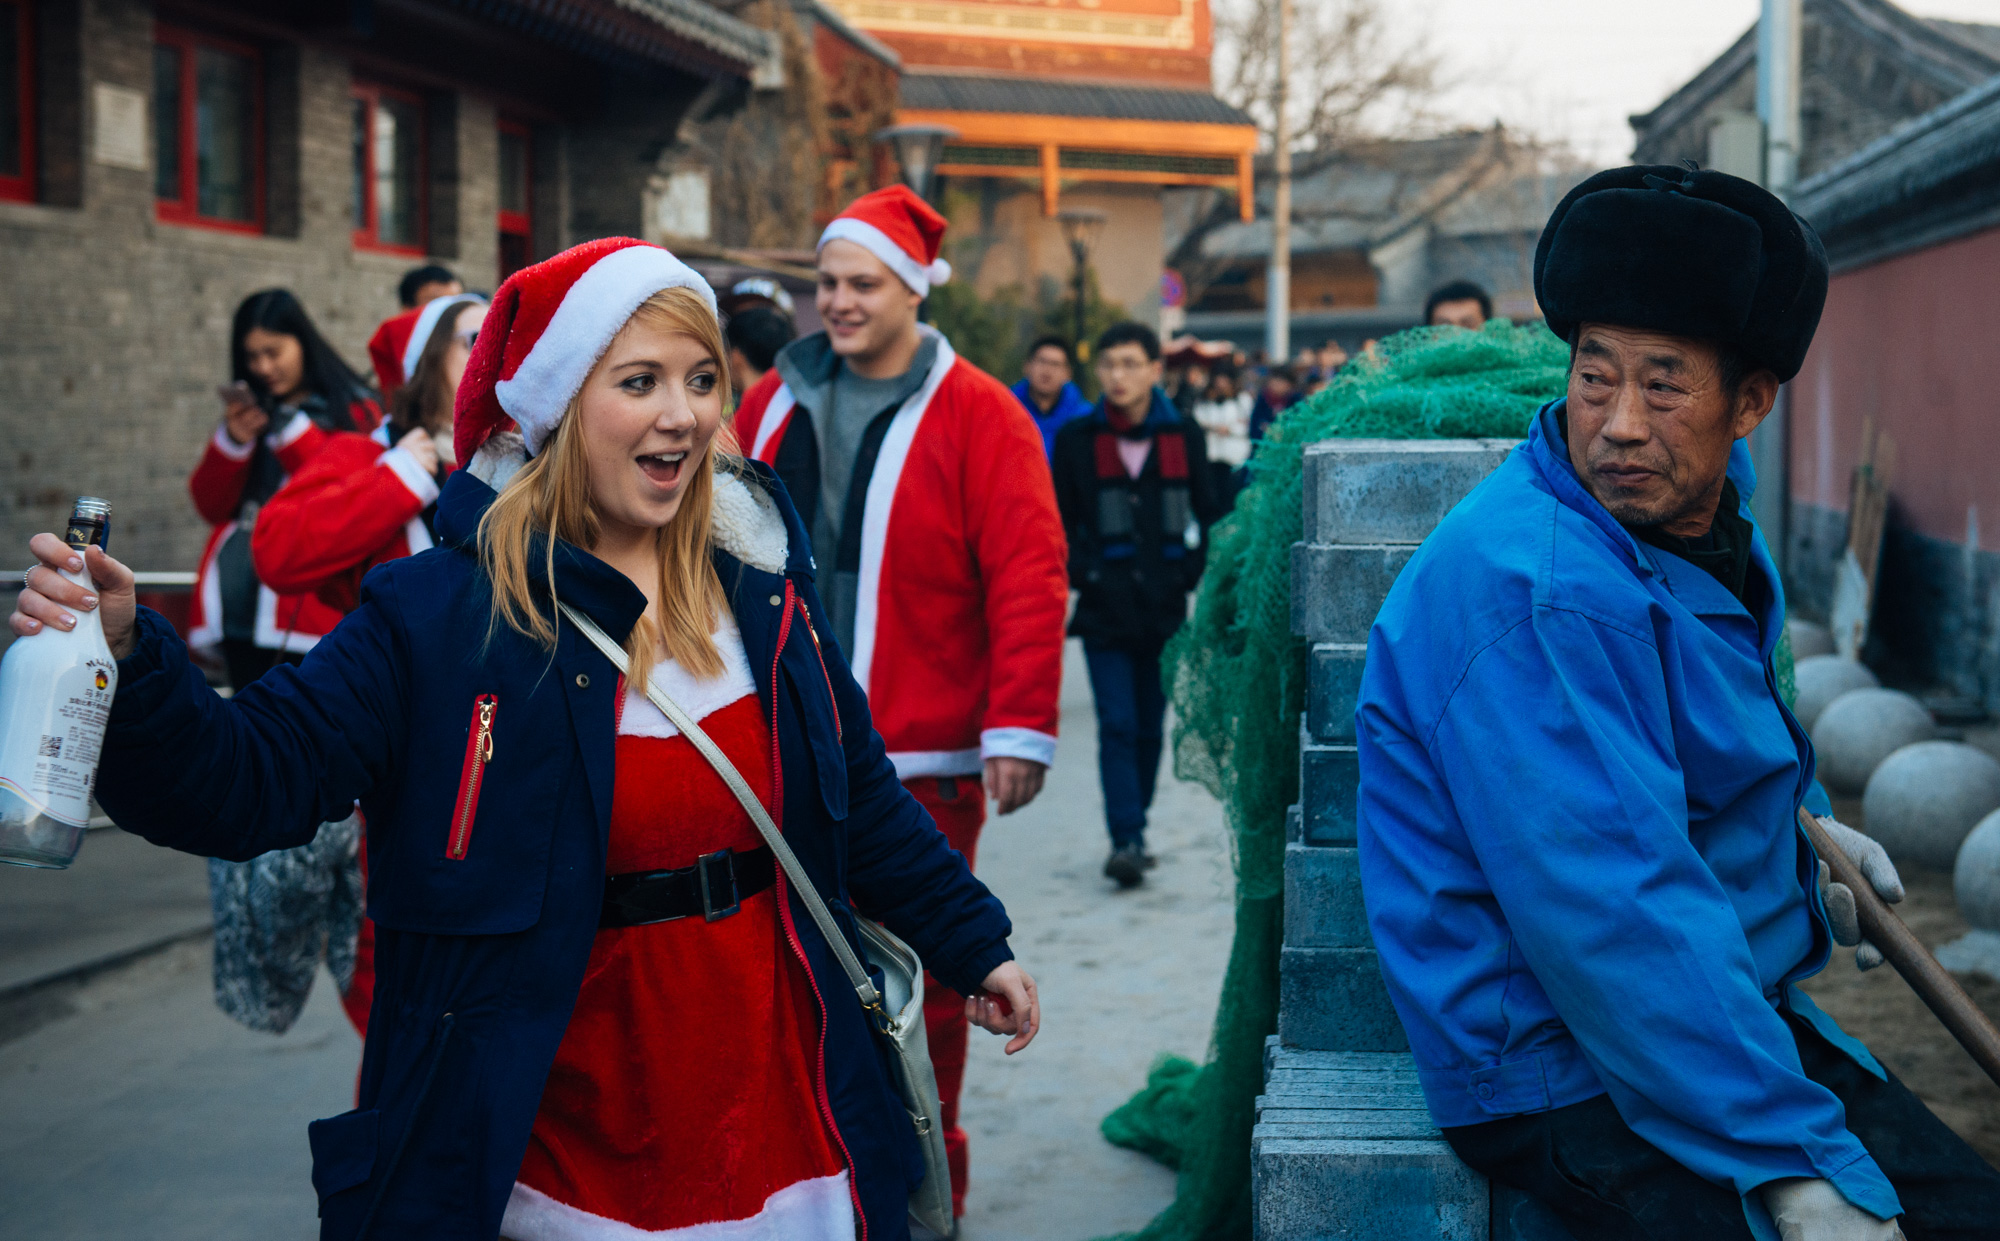 """Santa interacts with a local worker doing renovations that must be thinking """"what are these foreigners doing? Strange group of fellows."""""""